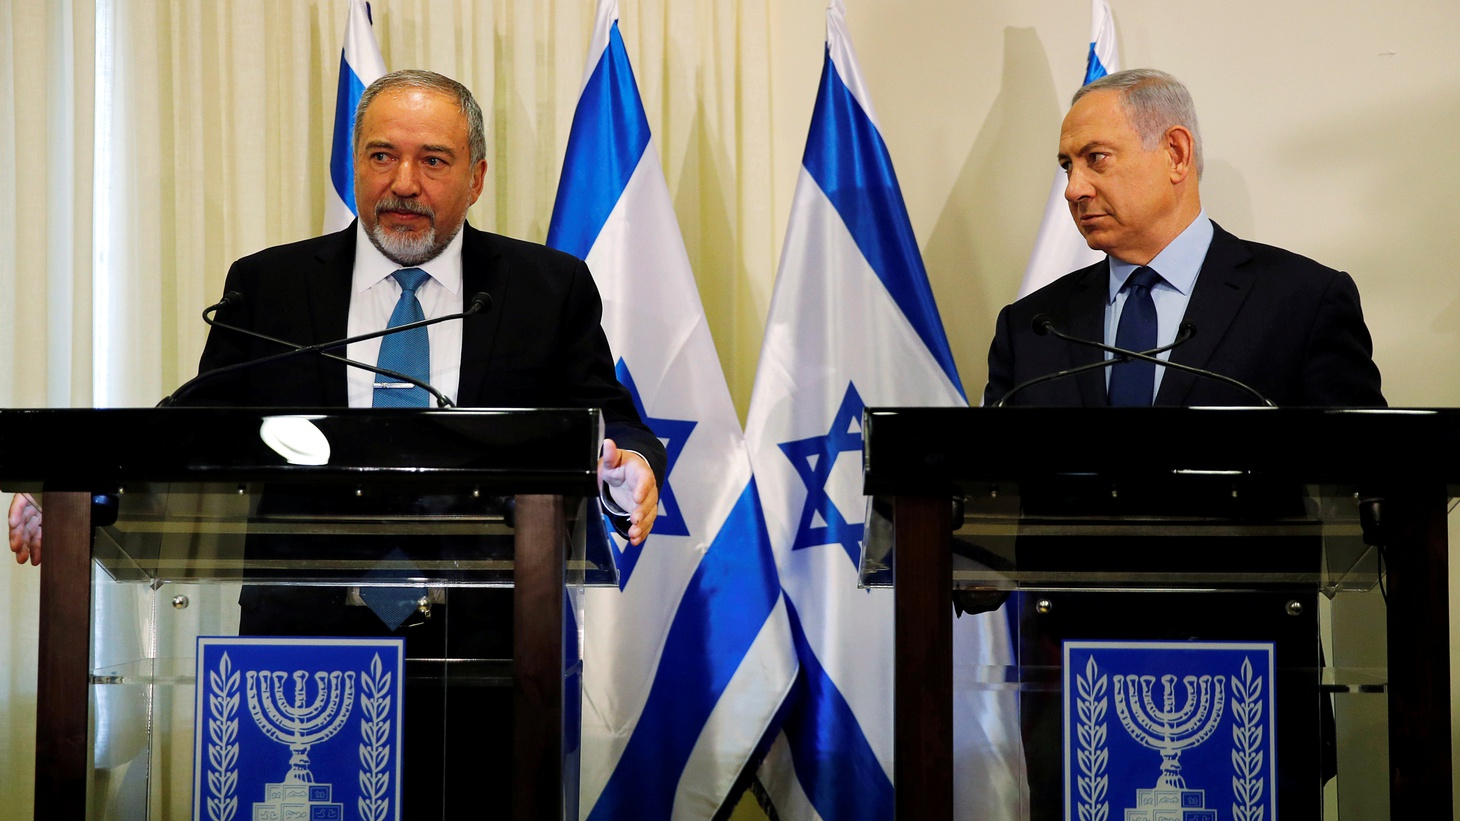 Prime Minister Benjamin Netanyahu has named Avigdor Lieberman to be Defense Minister -- the second-highest post in the government of Israel. Lieberman is well known for speaking the language of an extremist.